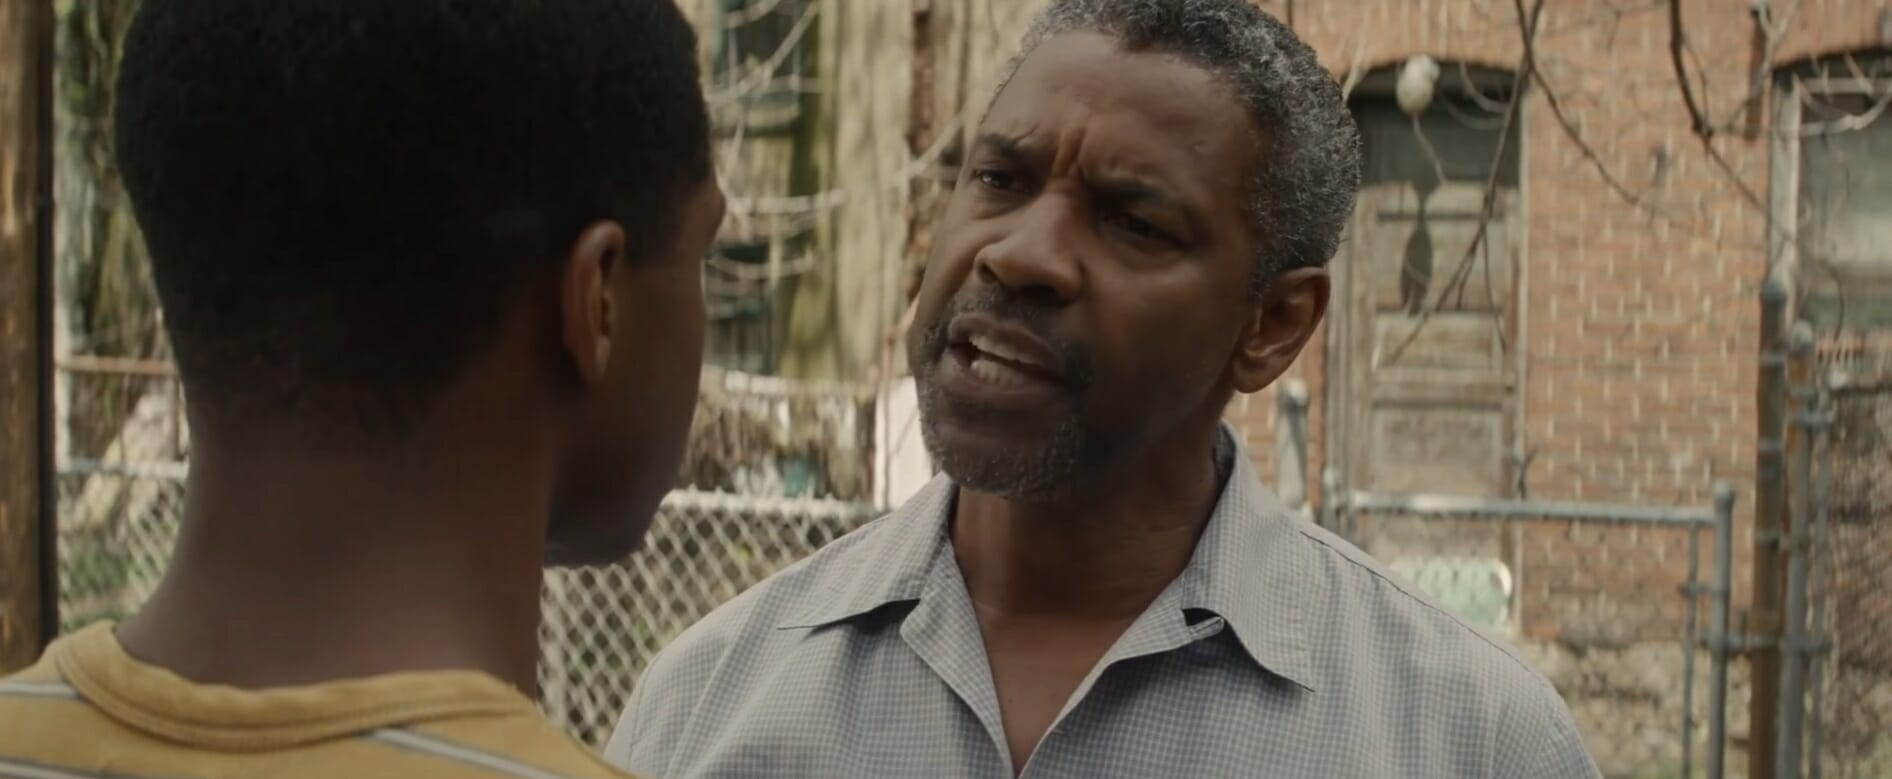 good movies on hulu : Fences